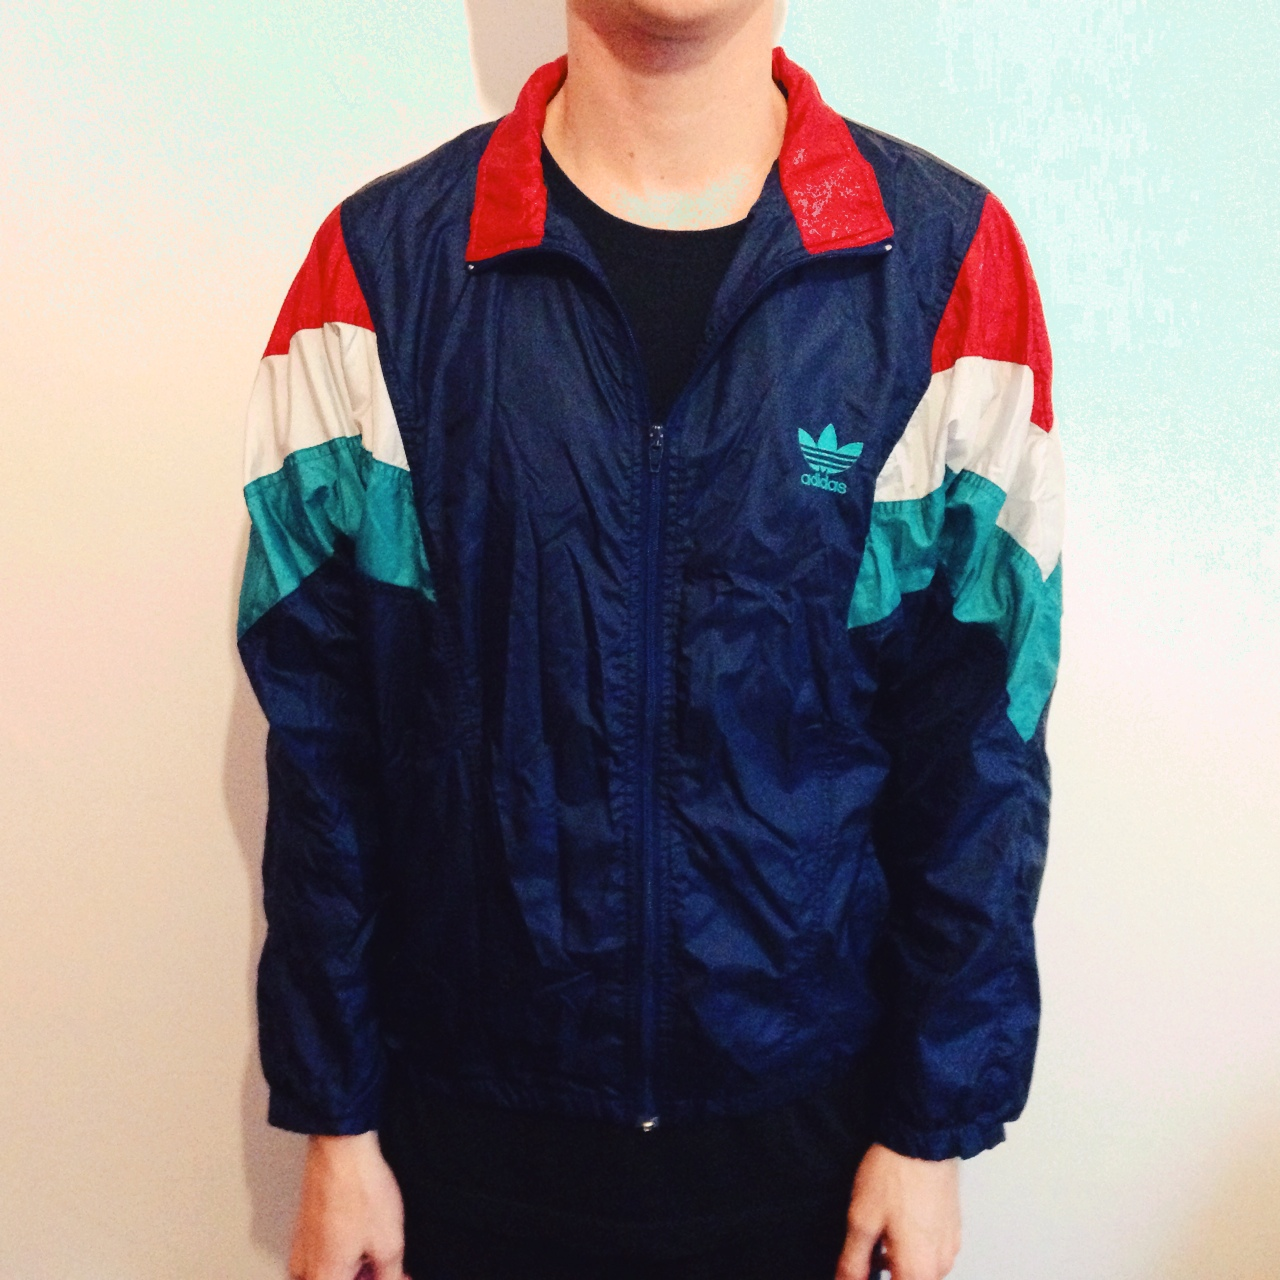 6a597a02f407 Vintage adidas shell tracksuit jacket. Unisex. Doesn t have a size ...